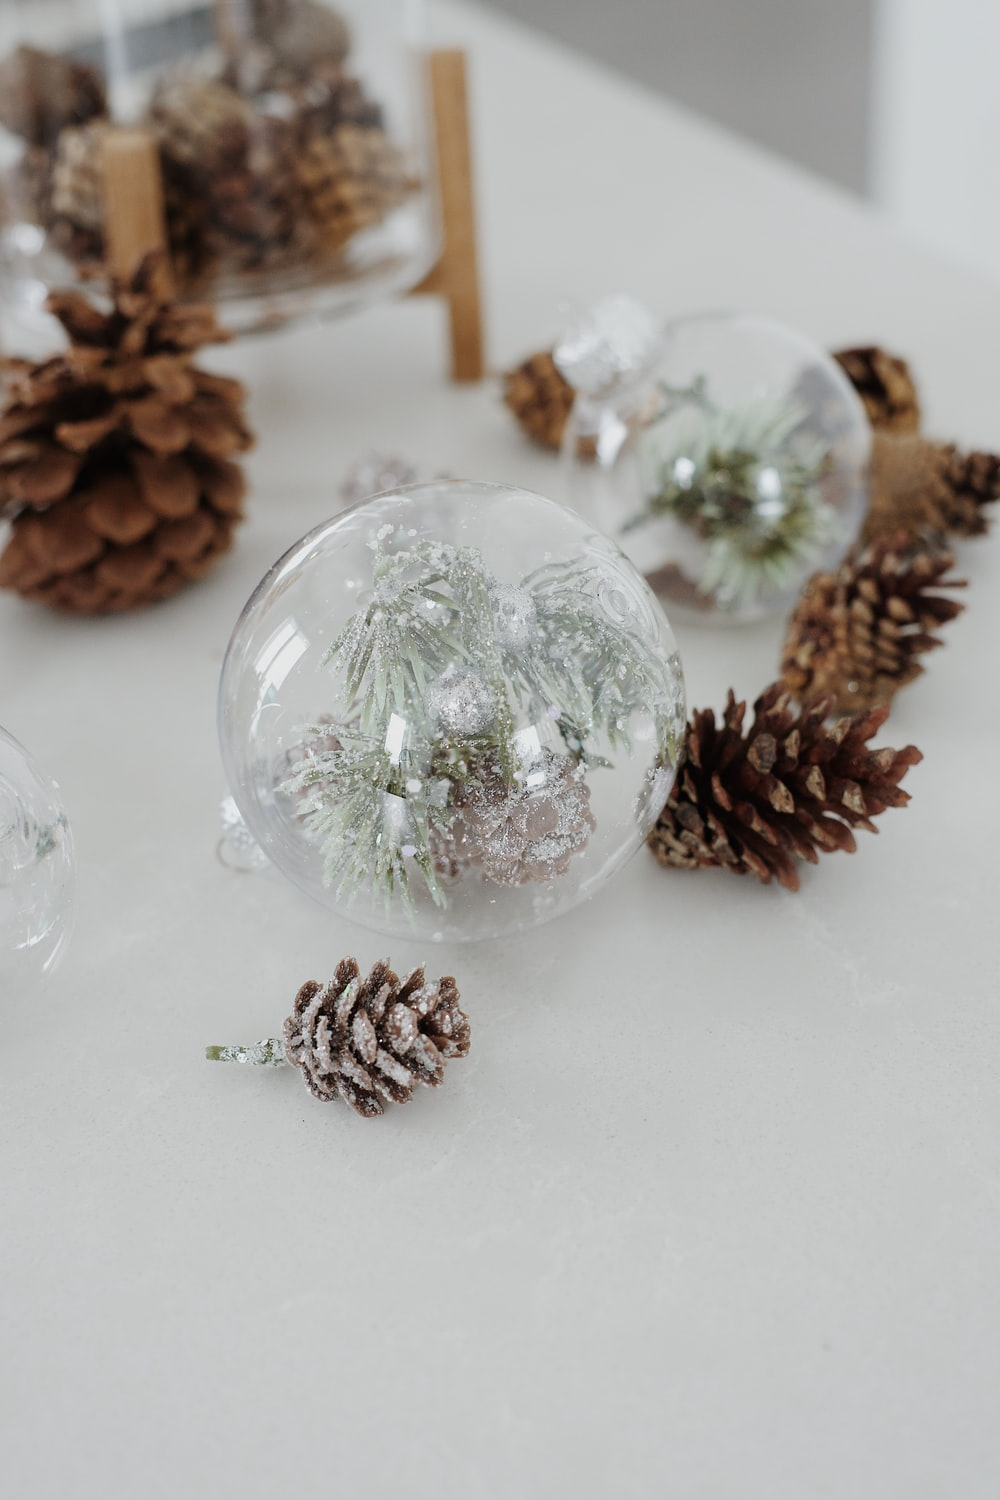 clear glass ball on white table